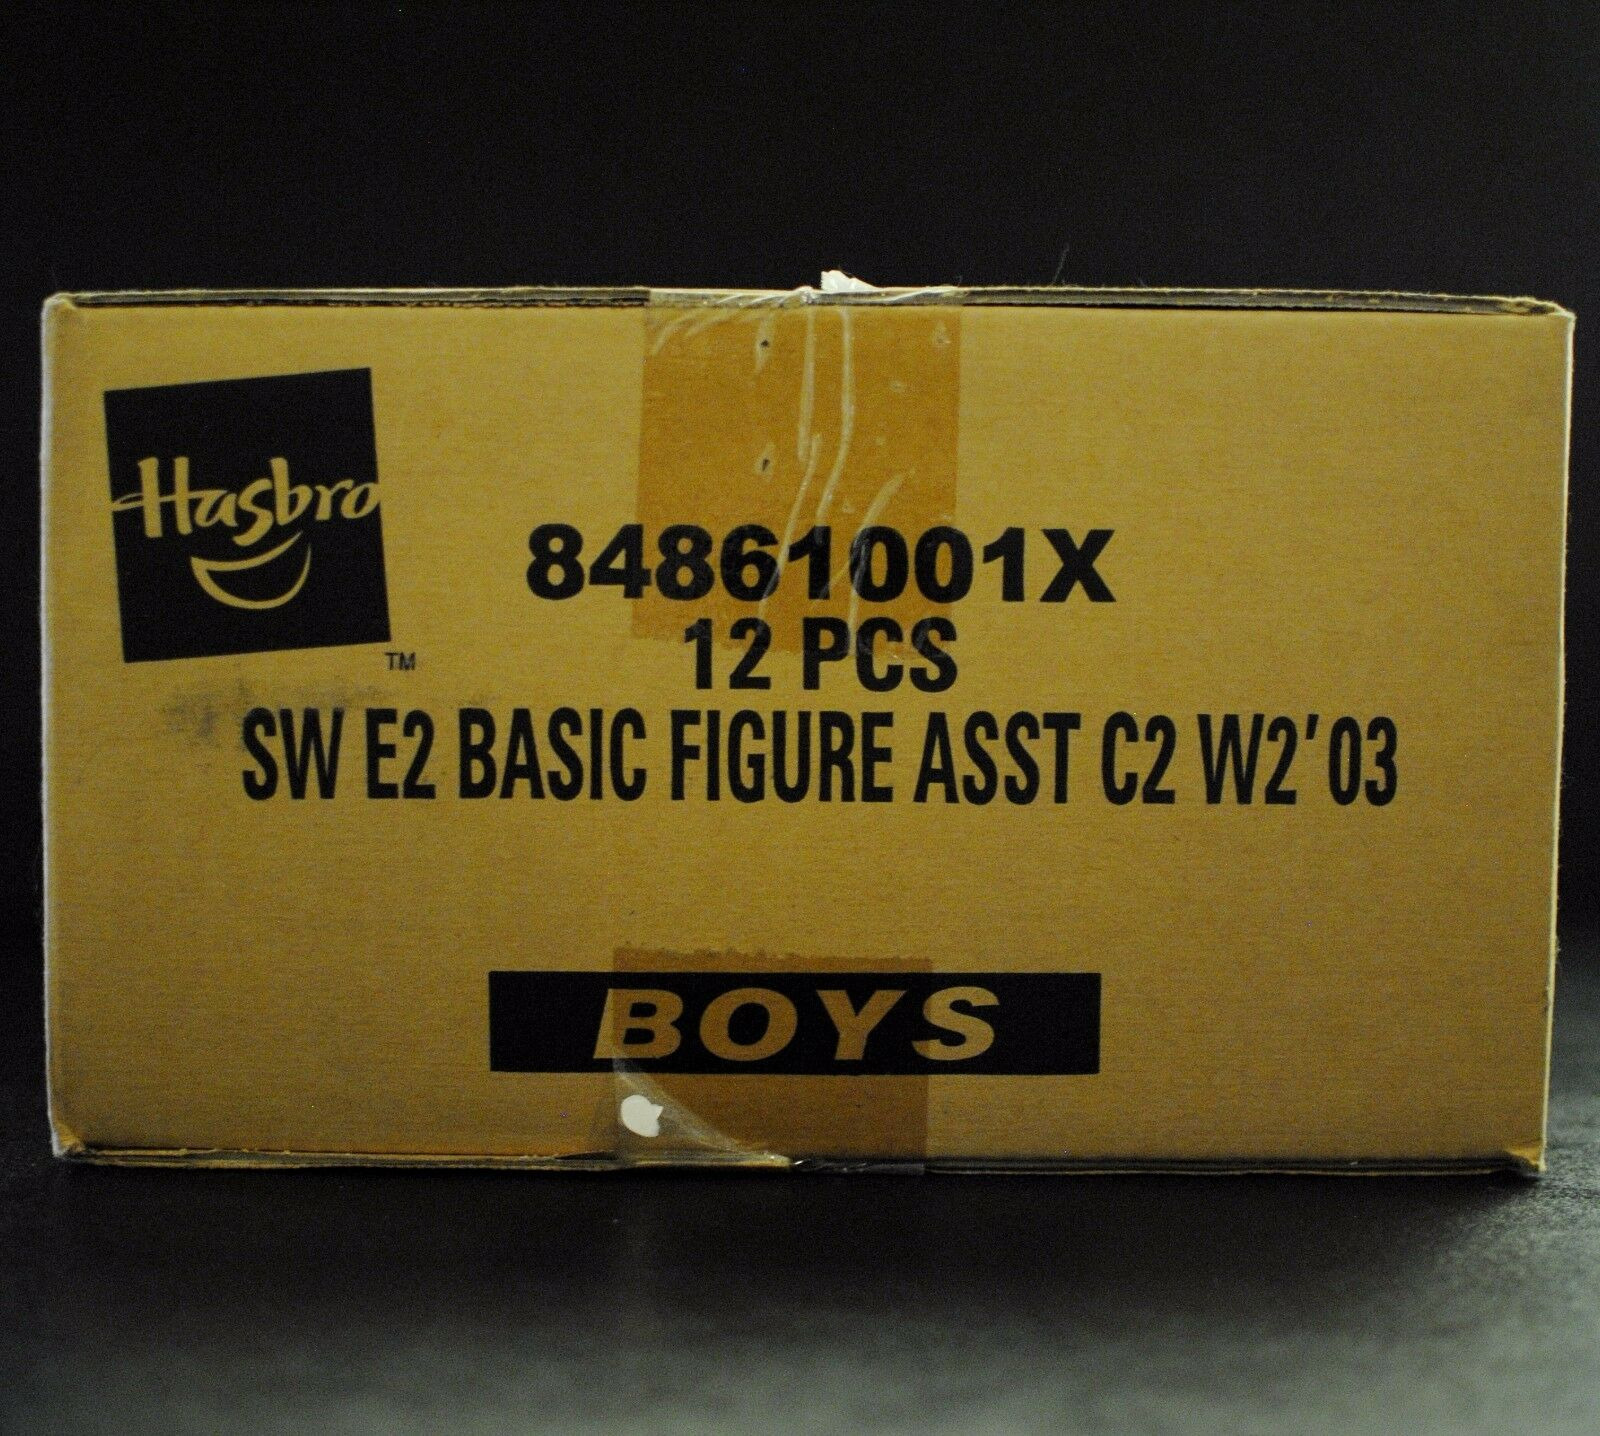 Star Wars SAGA Hasbro Factory Sealed Case W2 C2 '03 AOTC 12 Action Figures